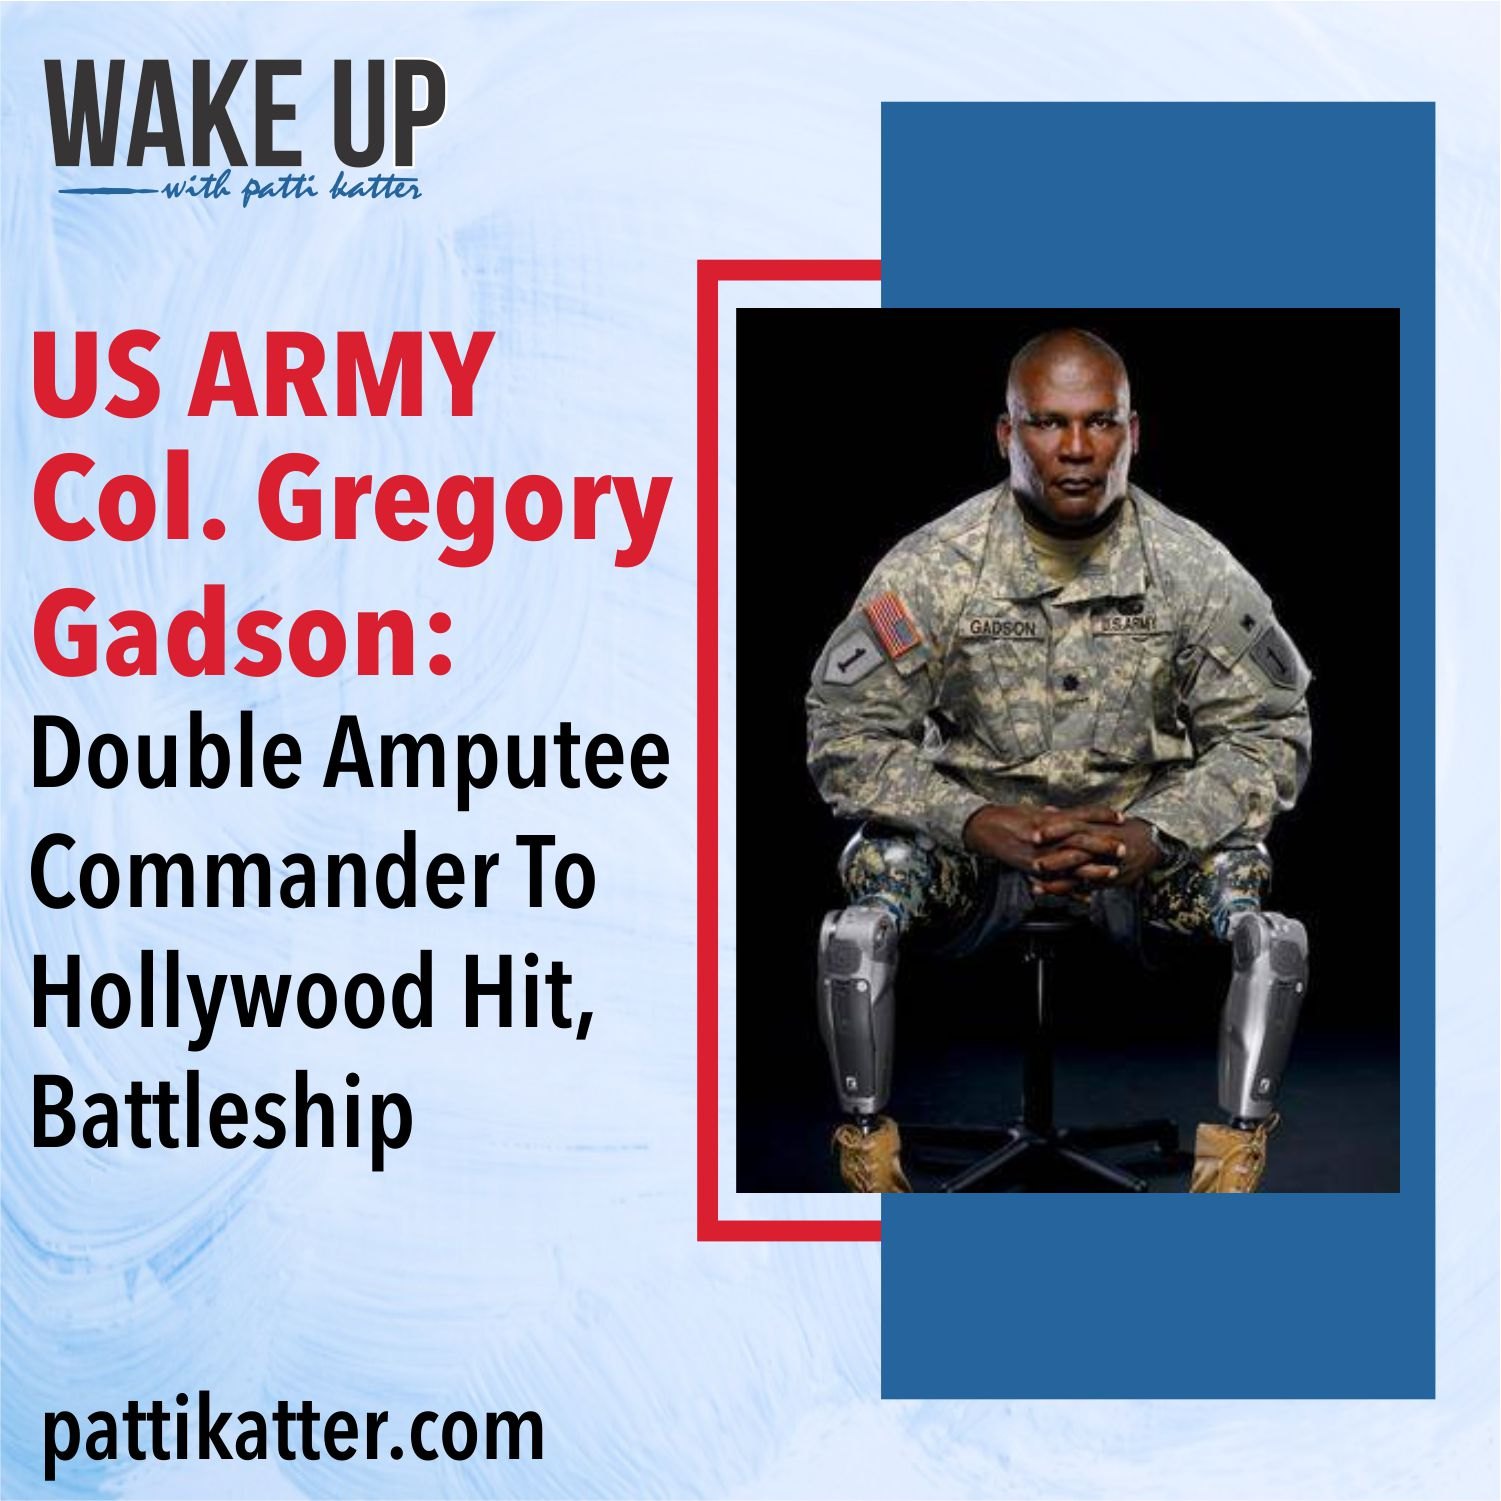 US ARMY COL Gregory Gadson: Double Amputee Commander To Hollywood Hit, Battleship